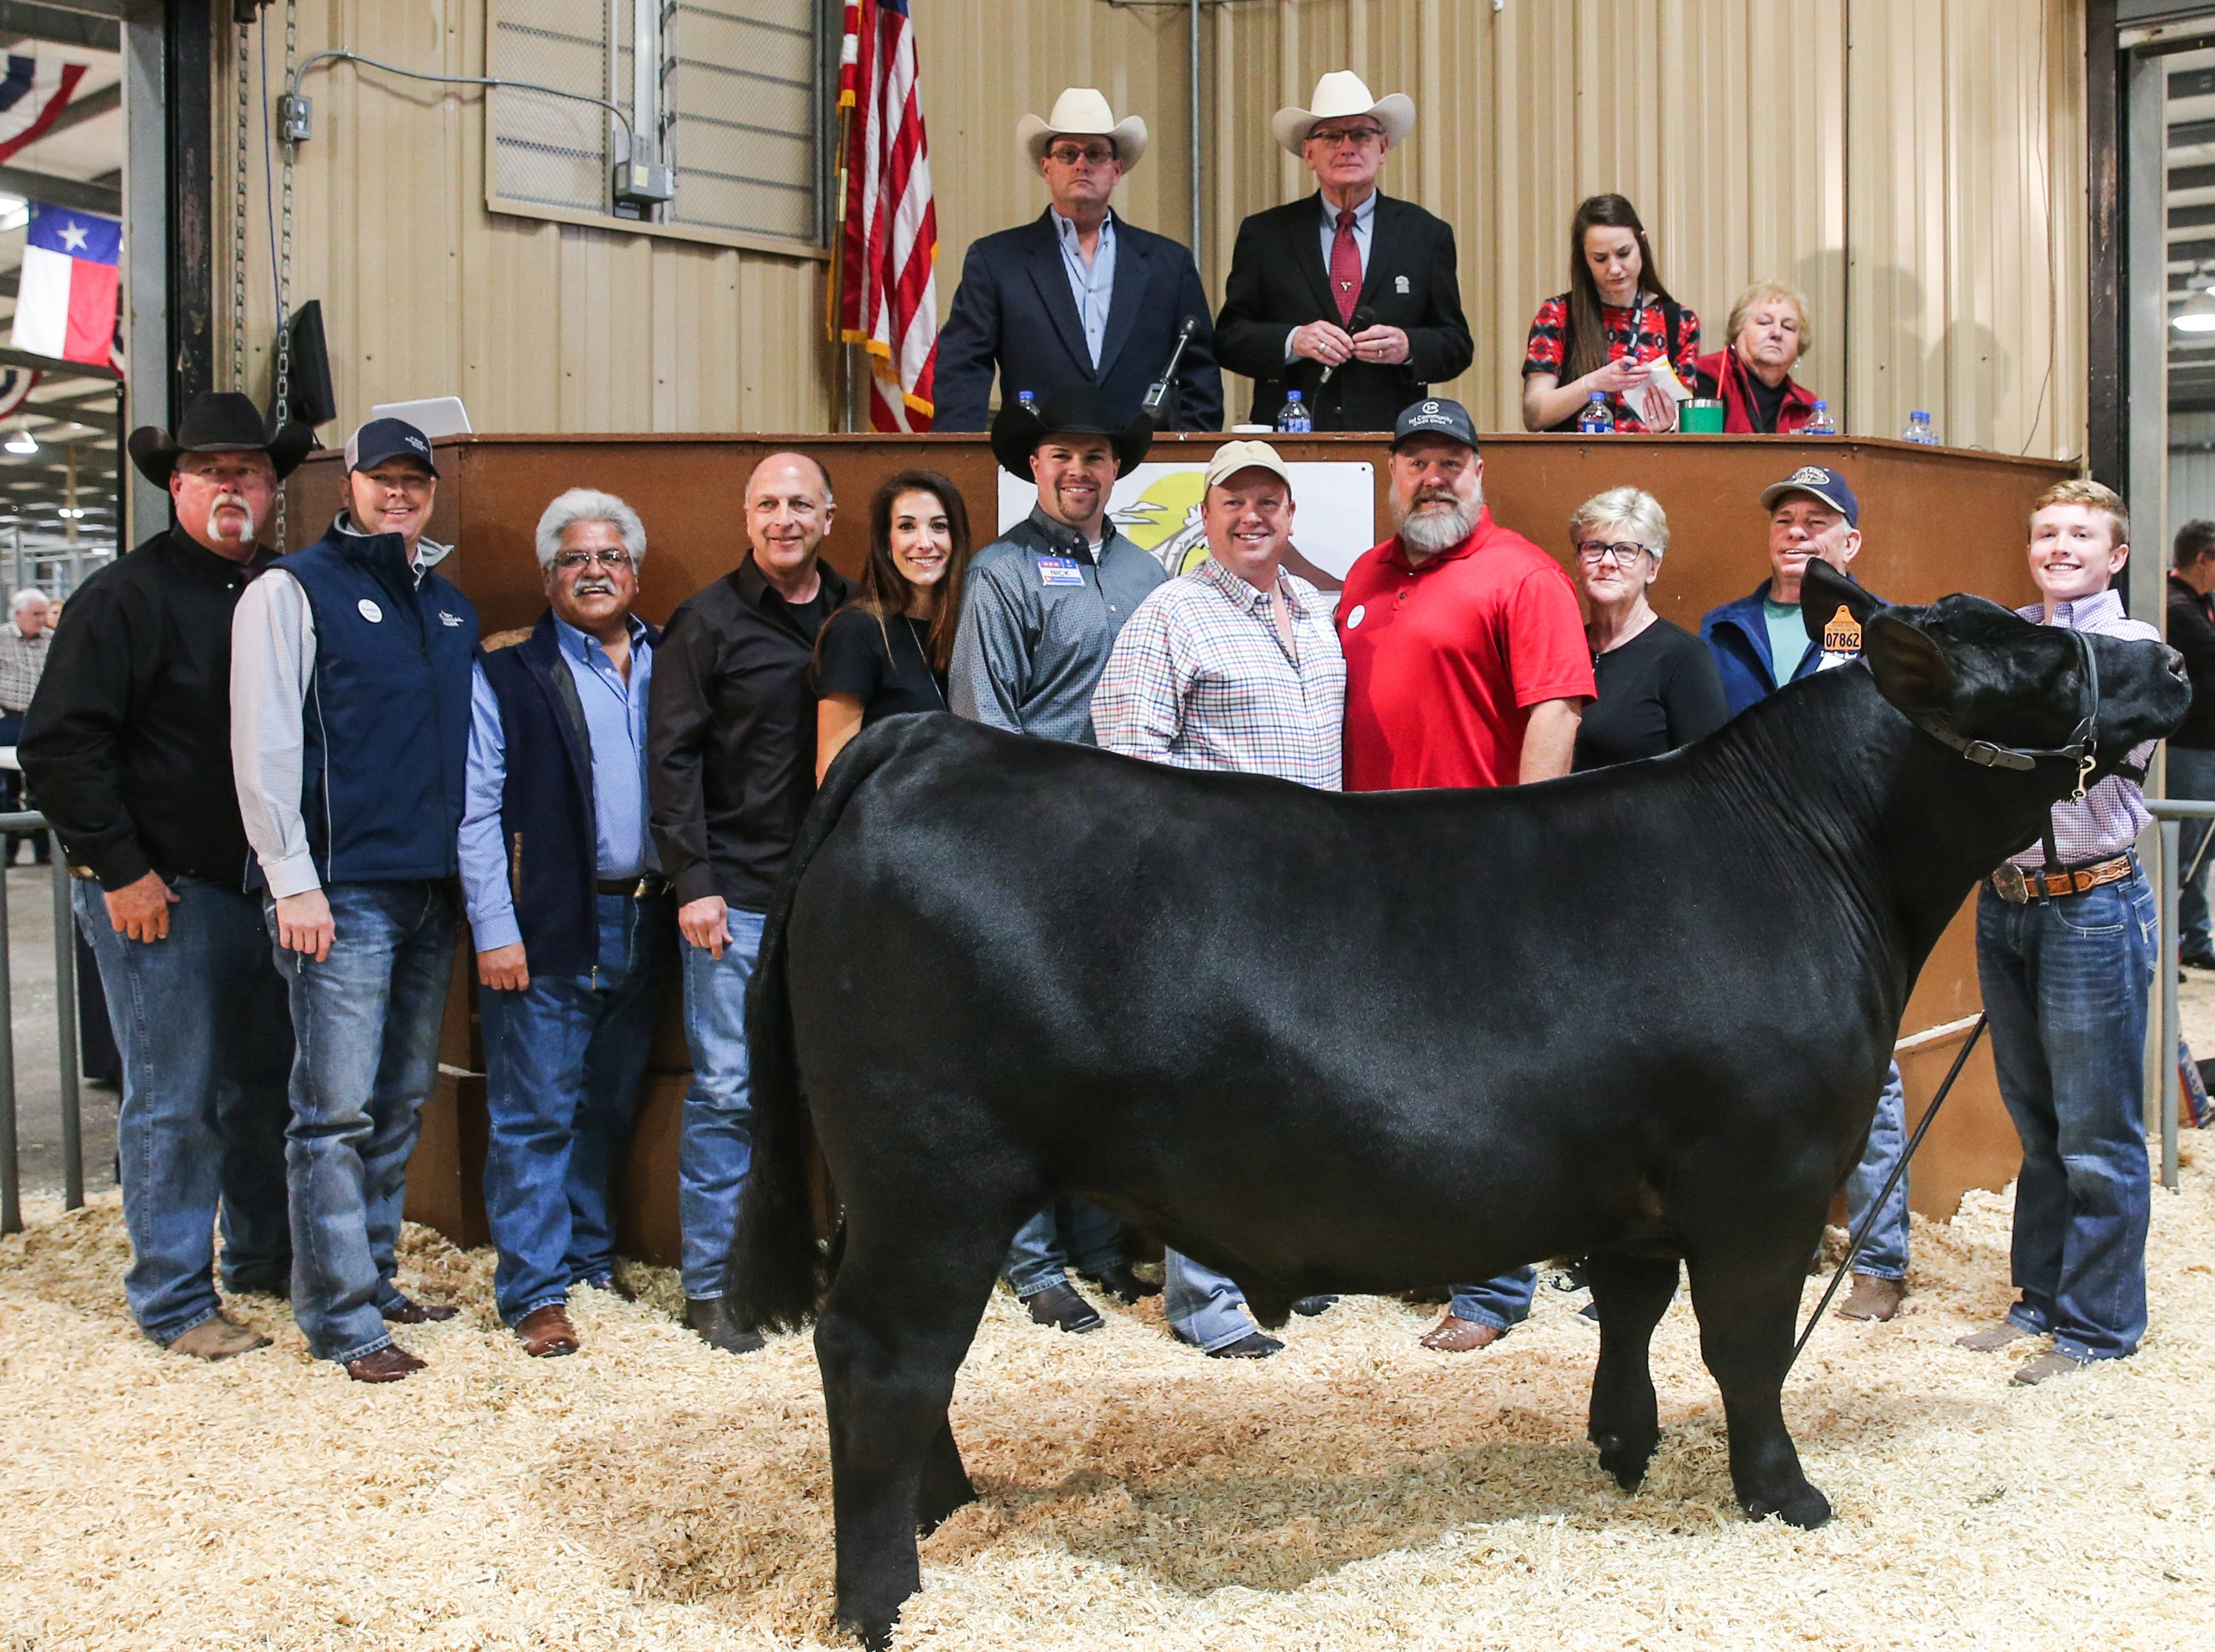 Grand Champion Steer exhibited by Tristan Himes of Sterling County 4-H sold for $37,500.00.From left to right: Mike Martin, Goode Construction; Chris Evatt, First Financial Bank; Raymond Meza, Twin Mountain Fence; Phil Gandy, Gandy Ink; Brie Perks, Rocking Chair Ranch; Nick George, H-E-B; James Sanderson, Armstrong, Backus, & Company; Bill Nikolauk ,1st Community Federal Credit Union; Pattie Self, Automatic Fire Protection; Chuck Jones, Lone Star Beef; Tristan Himes (exhibitor); London Bird (holding banner)